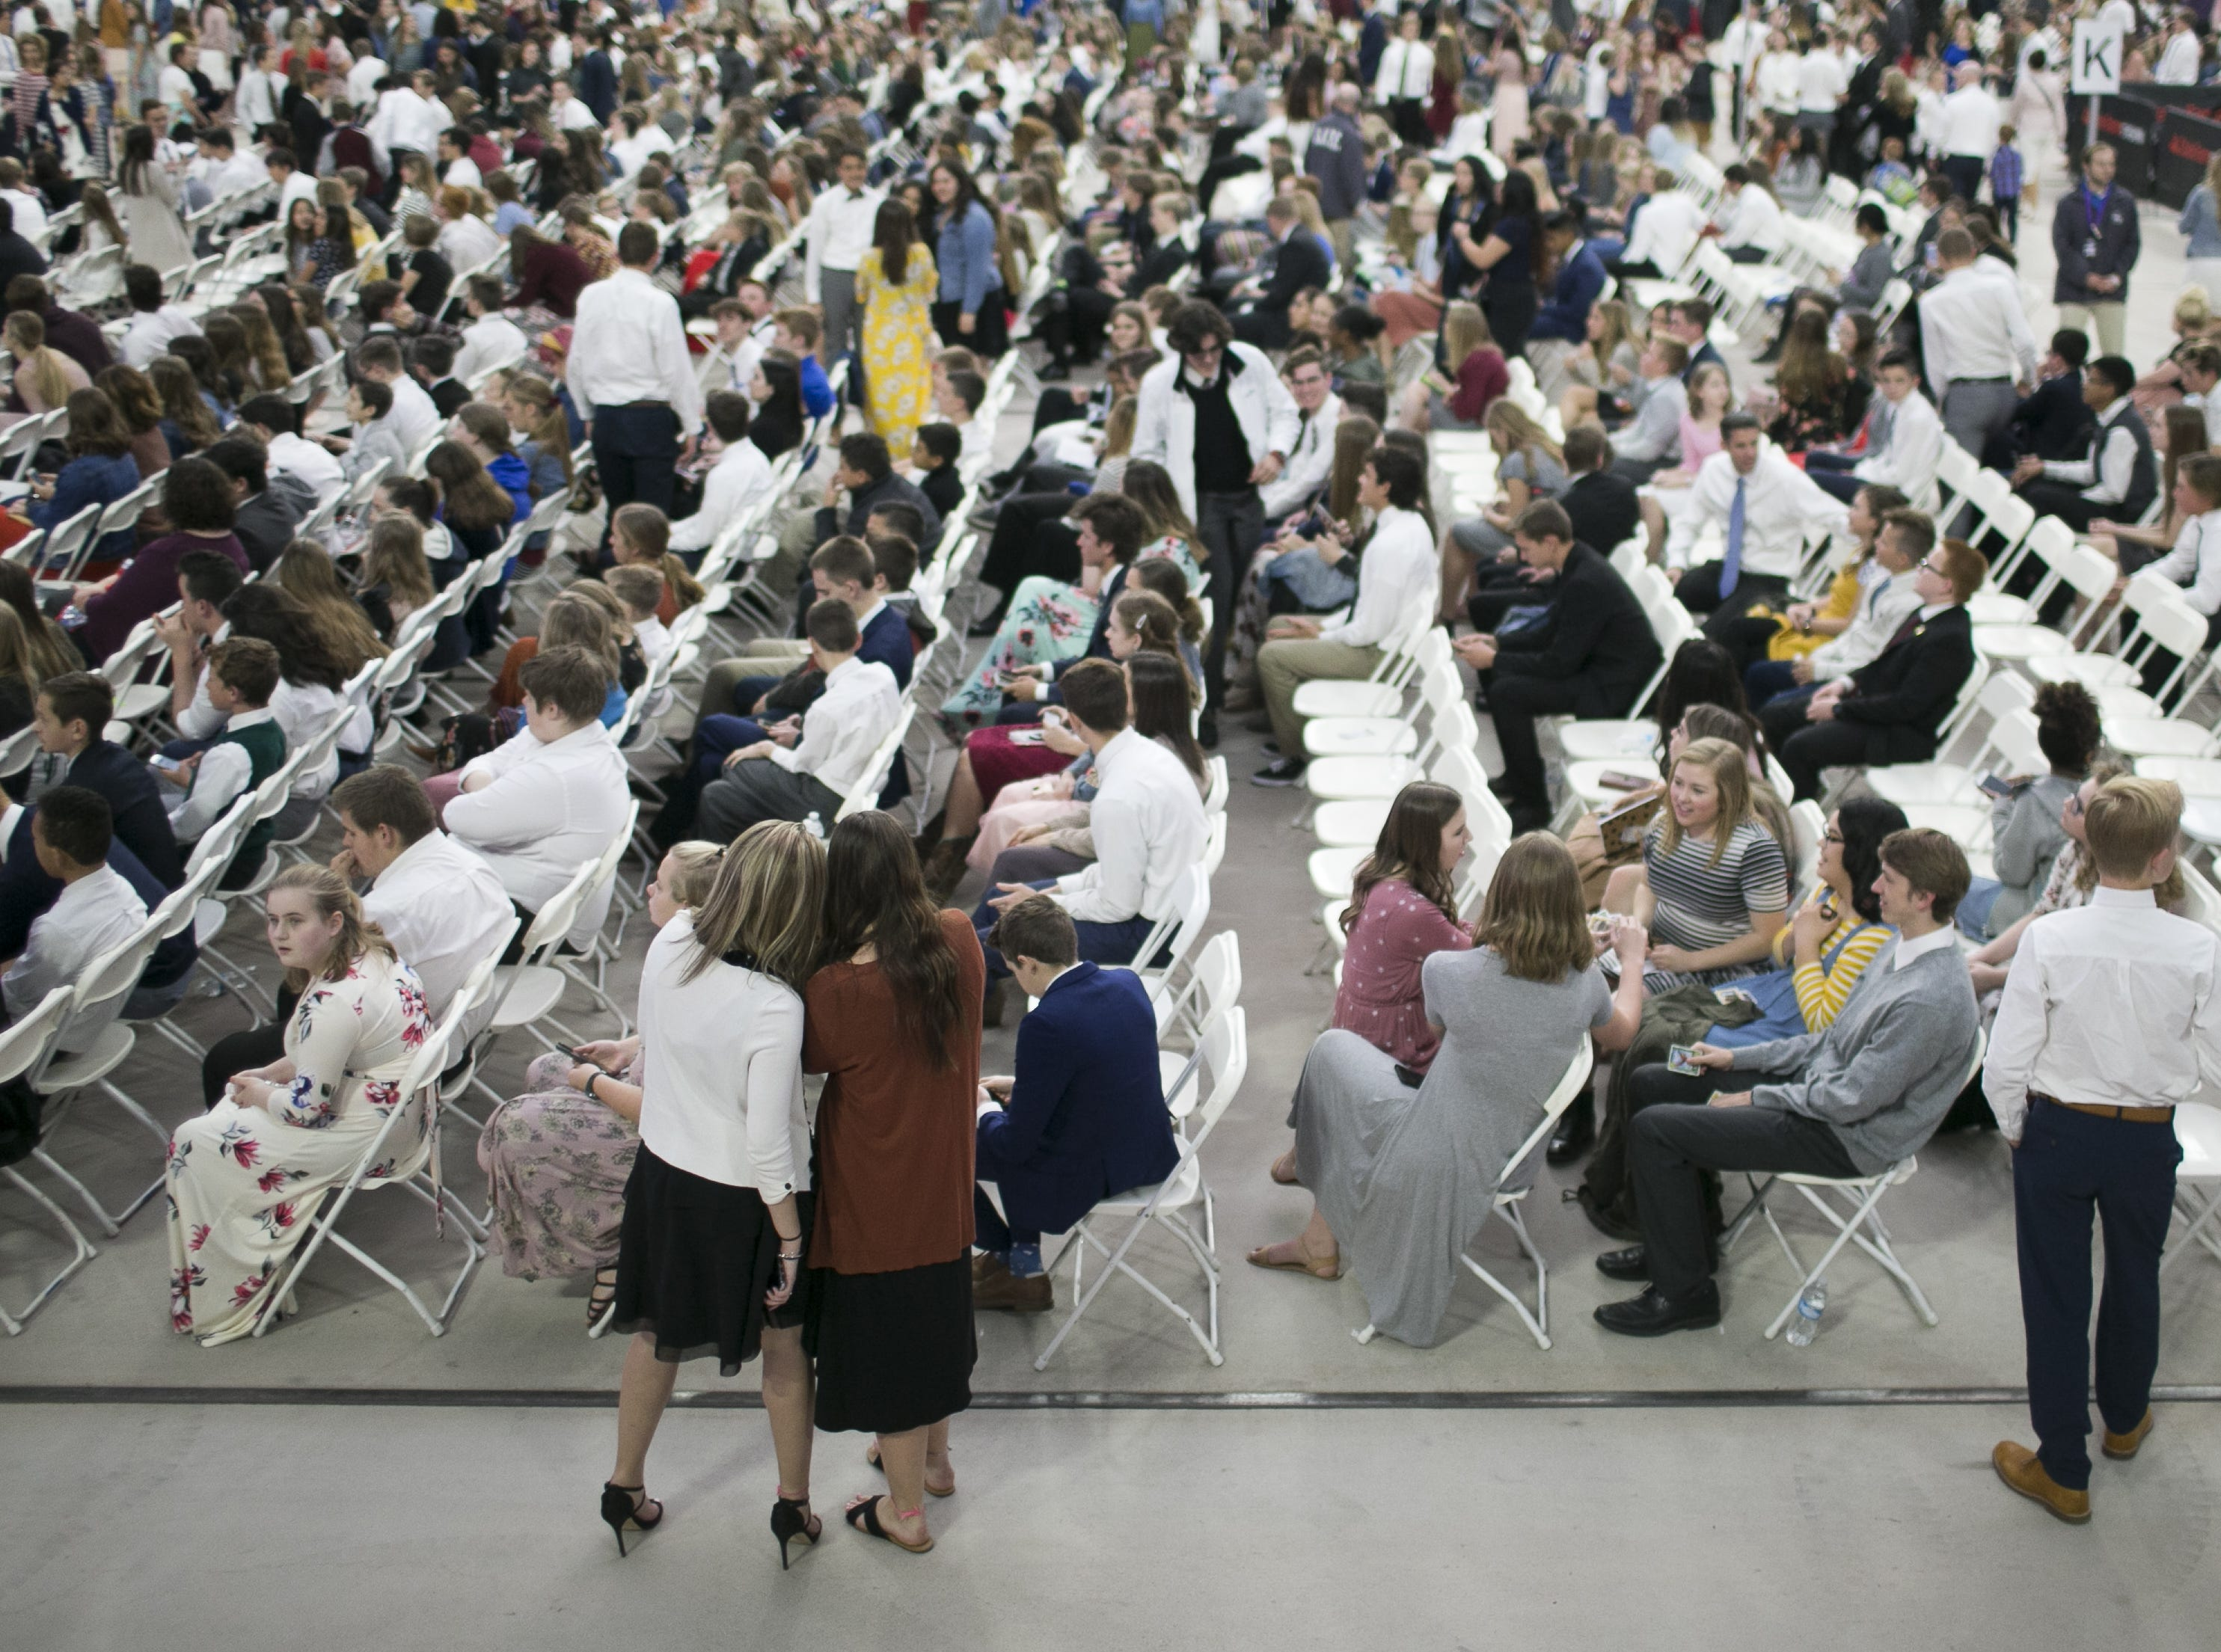 Members of the Church of Jesus Christ of Latter-day Saints wait to hear president Russell Nelson speak at State Farm Stadium in Glendale, Arizona on Sunday, Feb. 10, 2019.